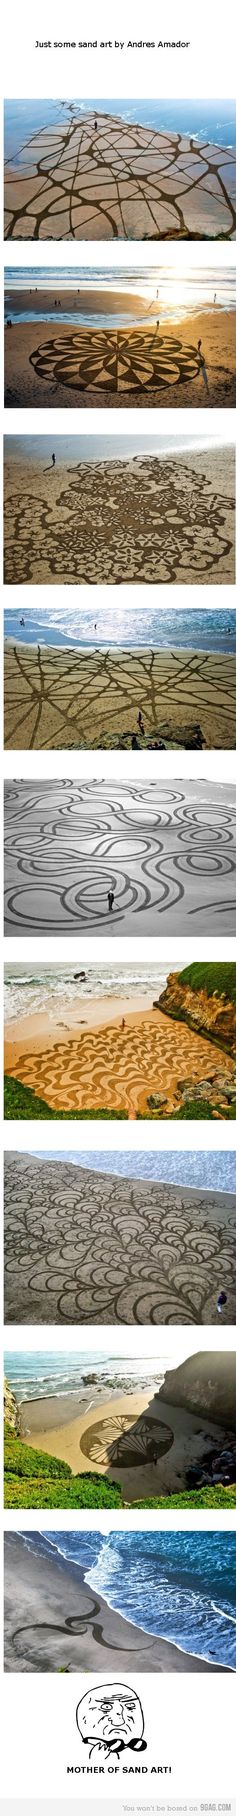 Sand art by Andres Amador wow!